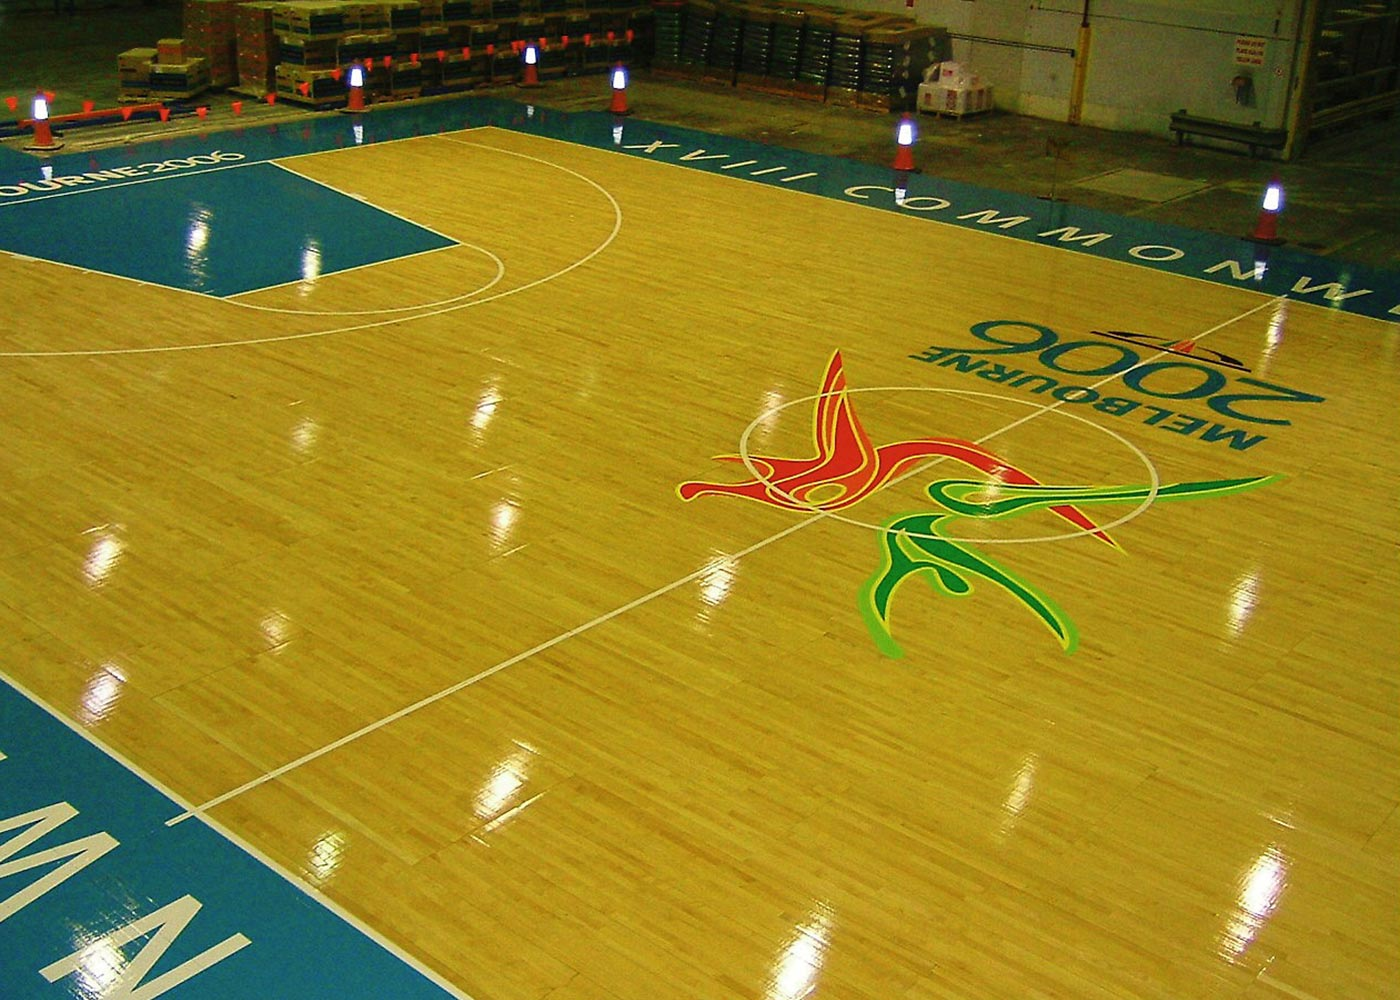 Pro King Sports Flooring at 2006 Commonwealth Games